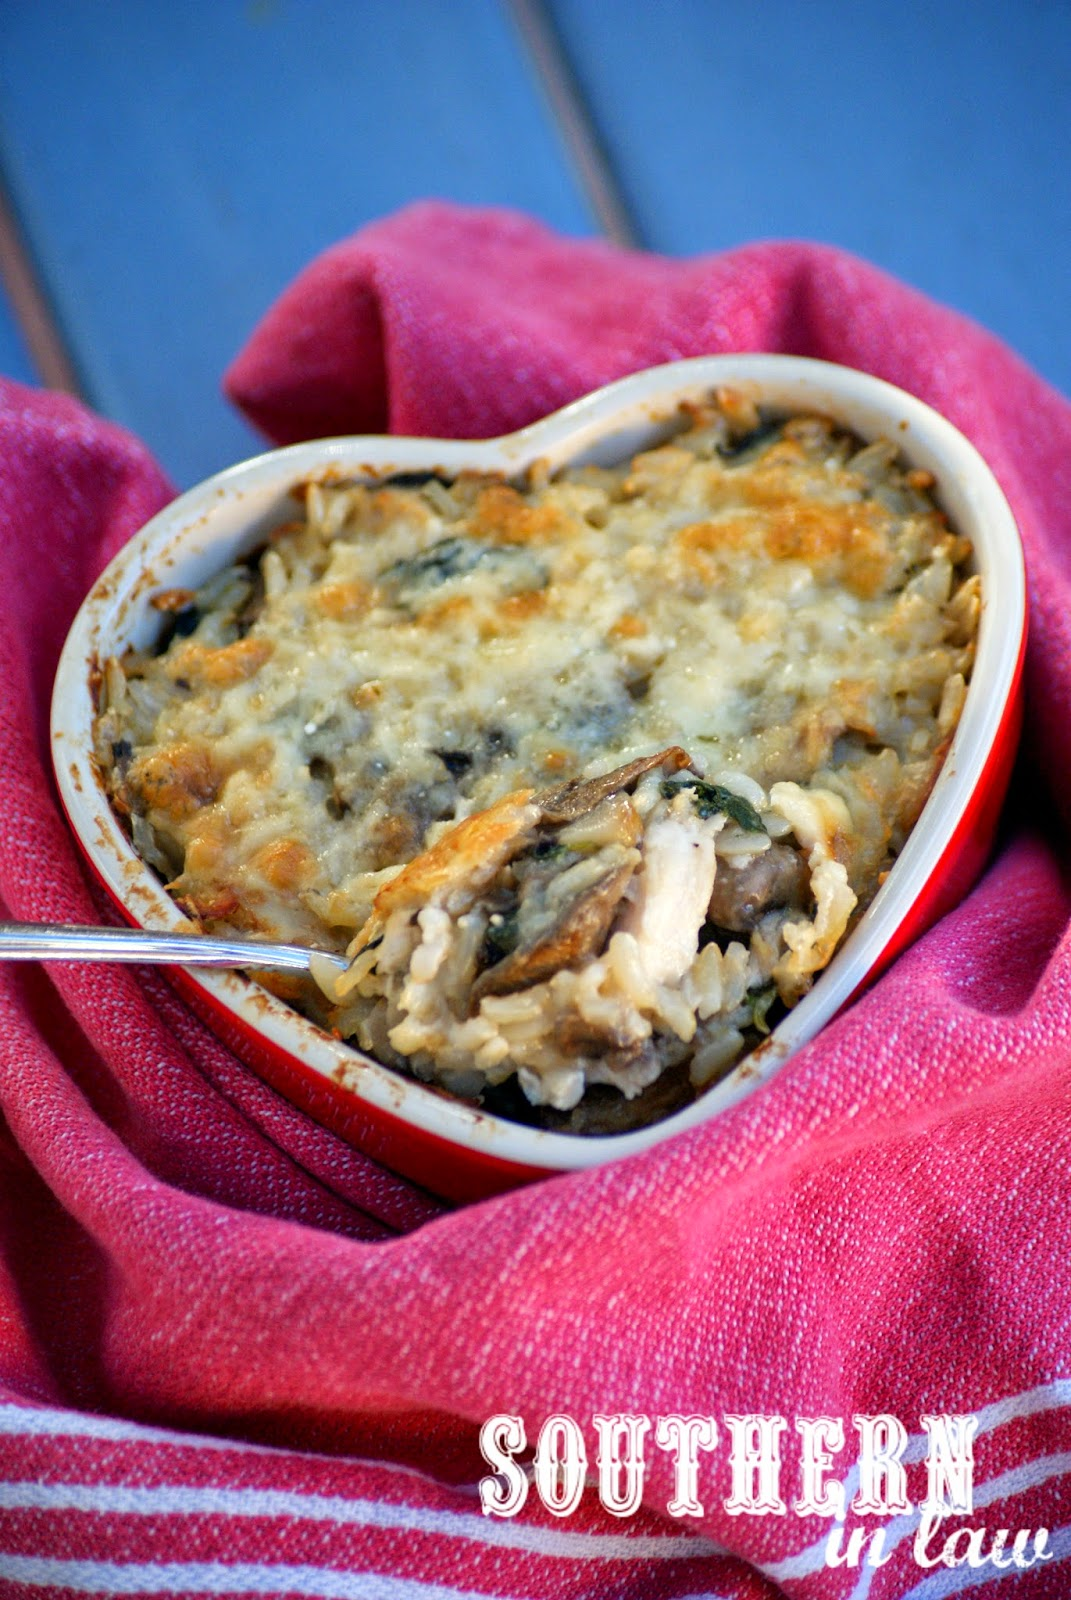 Healthy Cheesy Chicken and Mushroom Rice Bake Casserole Recipe using Greek Yogurt  - Low Fat, Gluten Free, Vegetarian Option, Eggless, Egg Free, Clean Eating Friendly